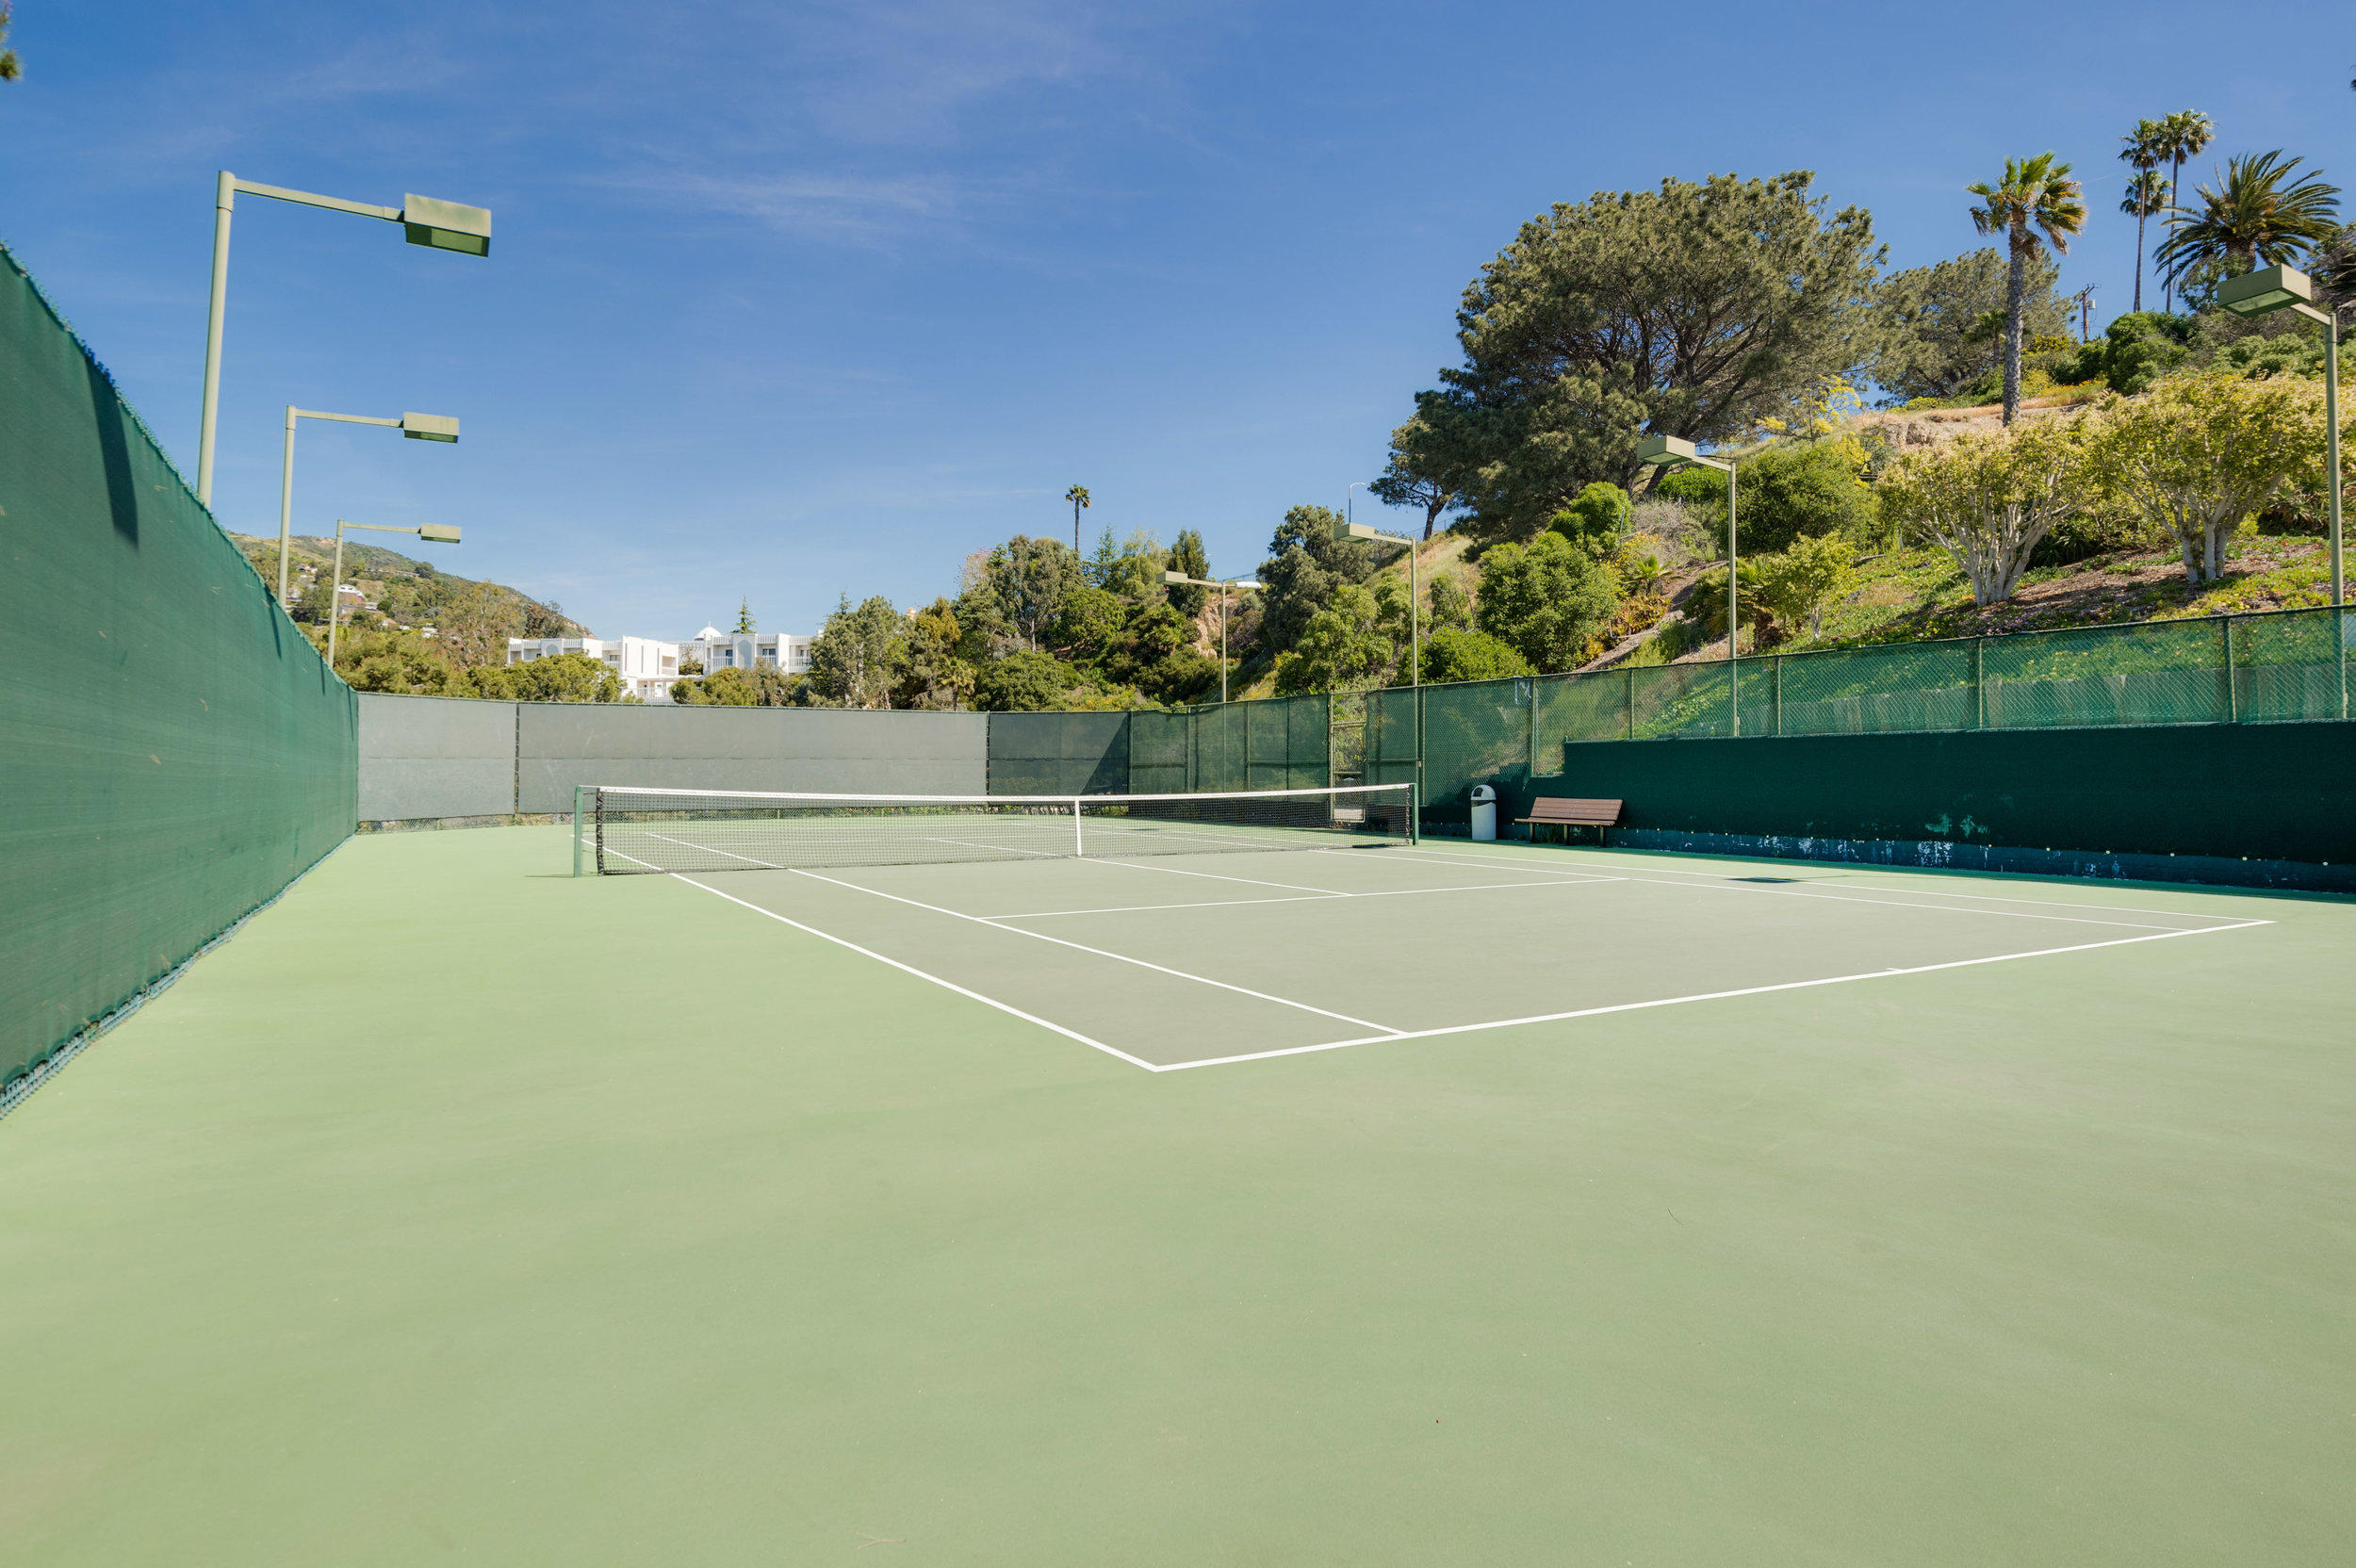 012 Tennis 17350 West Sunset Boulevard For Sale Lease The Malibu Life Team Luxury Real Estate.jpg